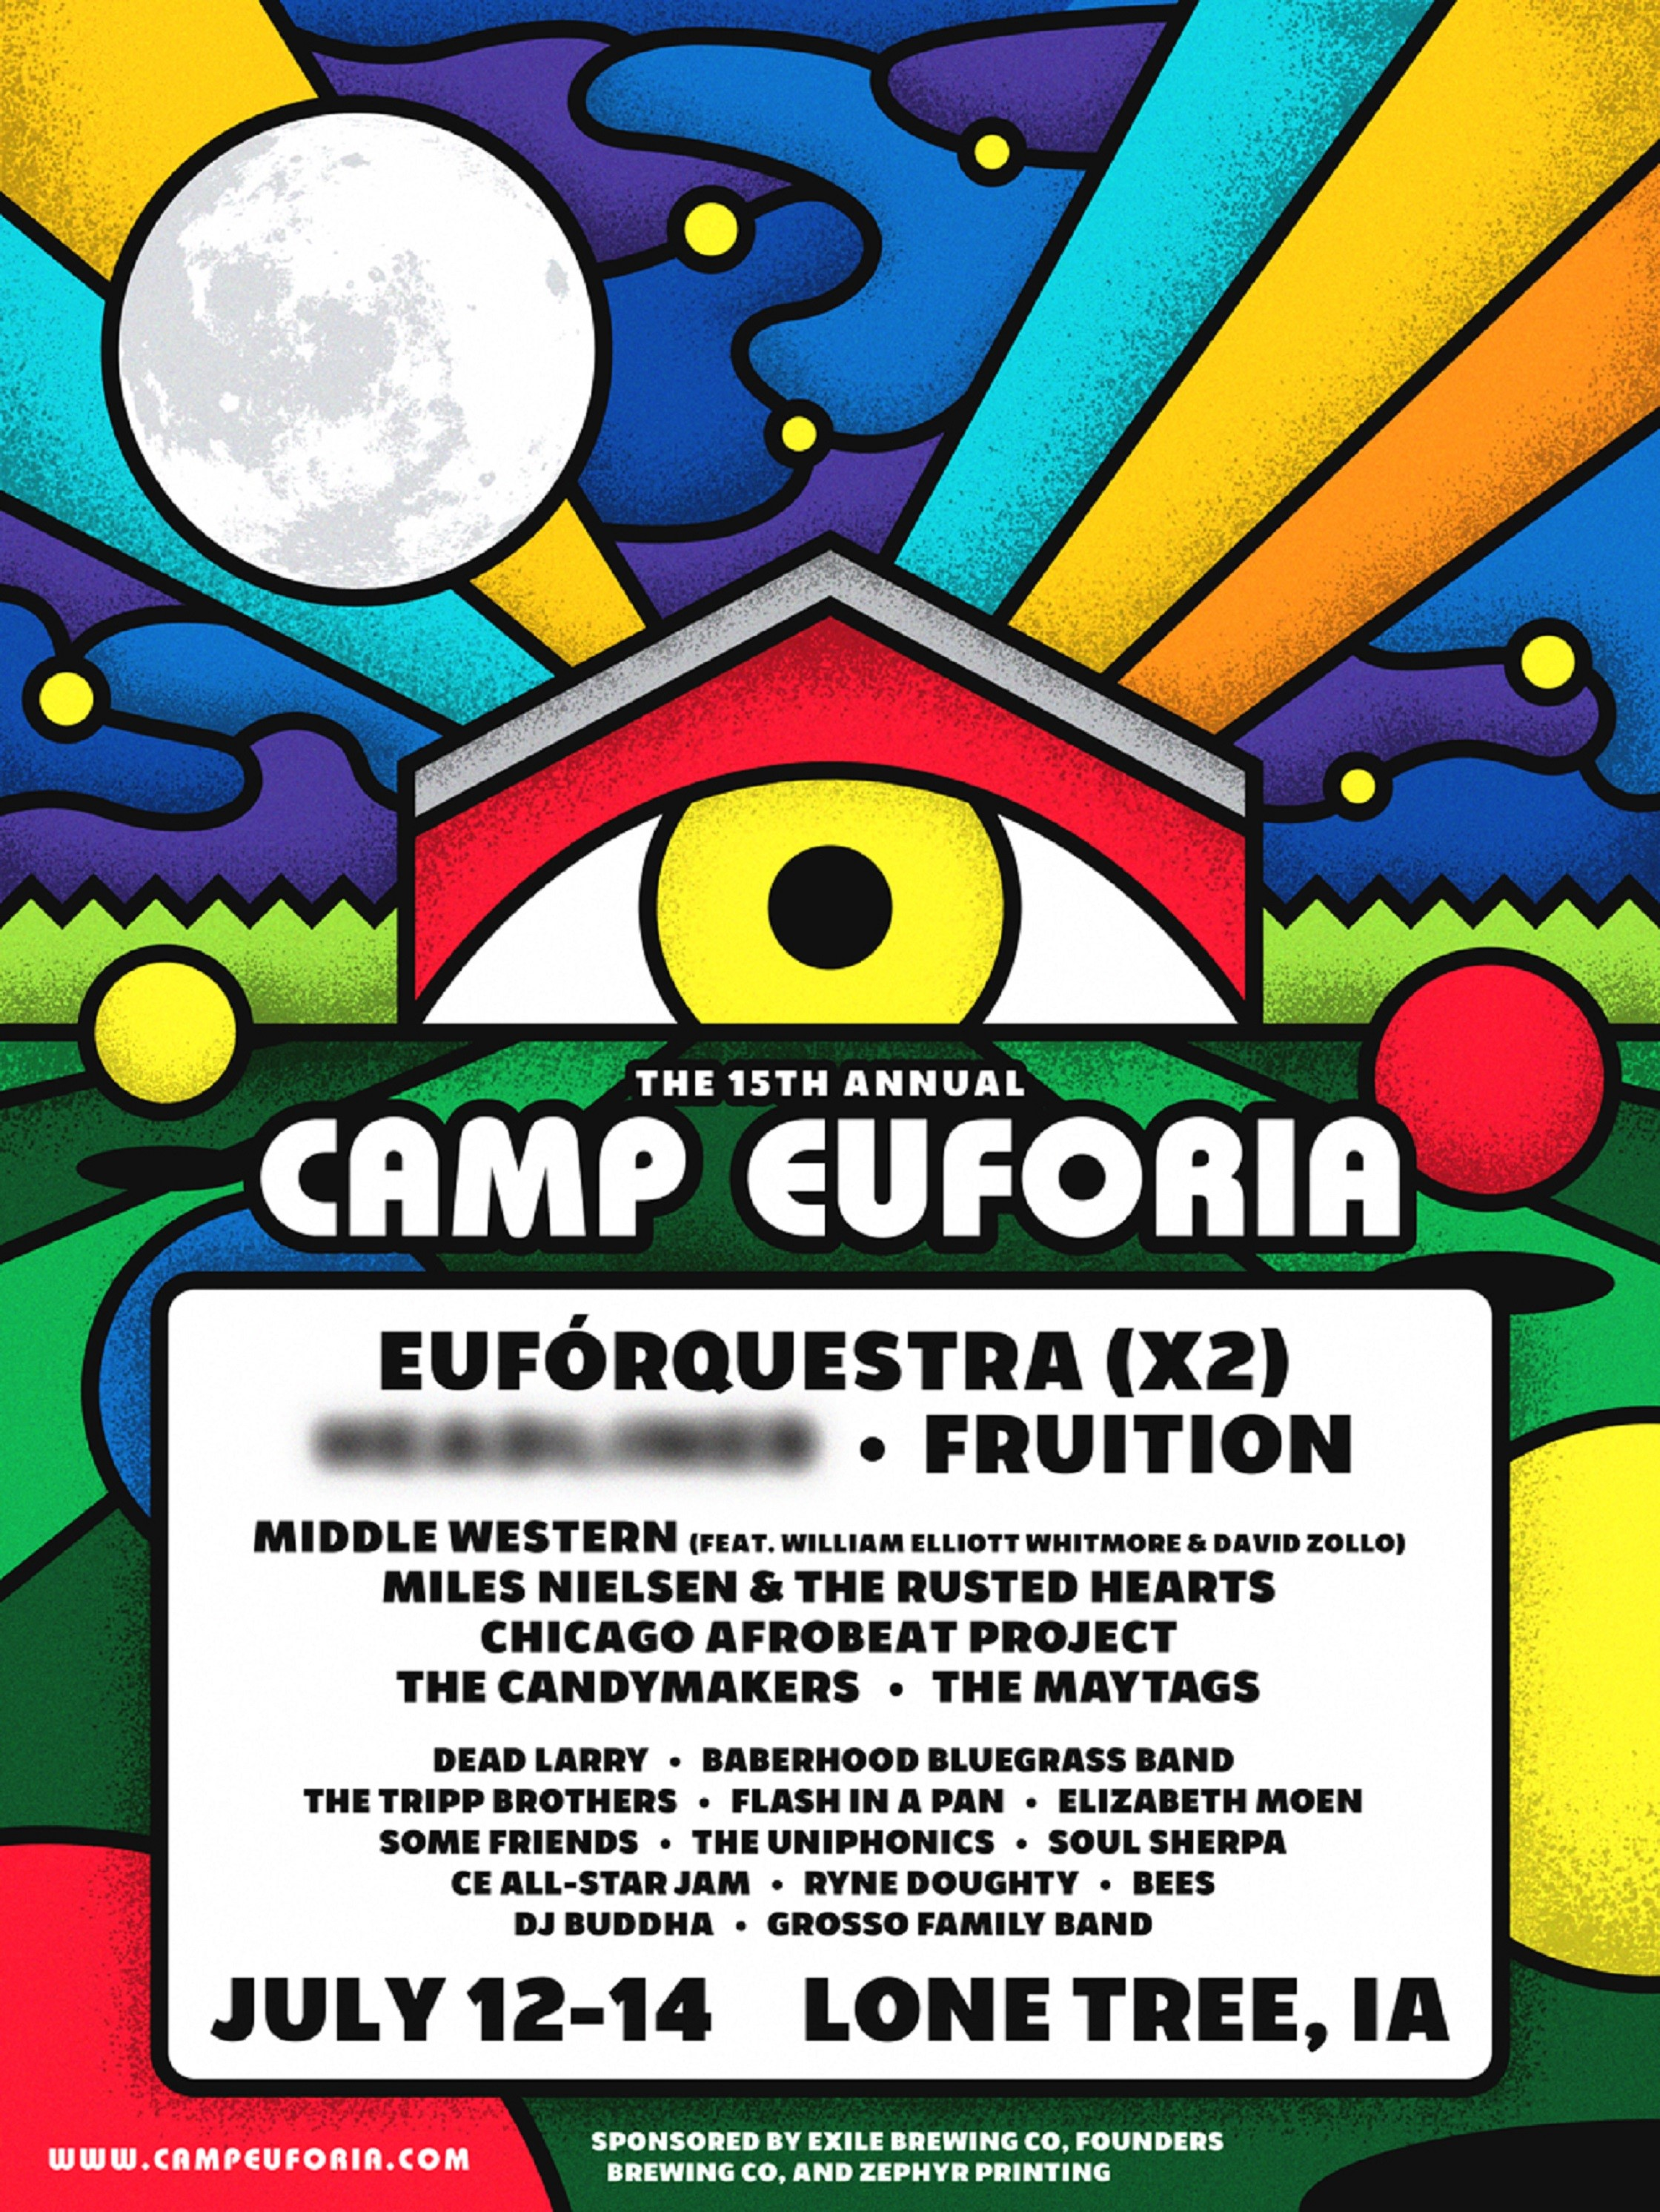 Camp Euforia Announces Initial 2018 Lineup